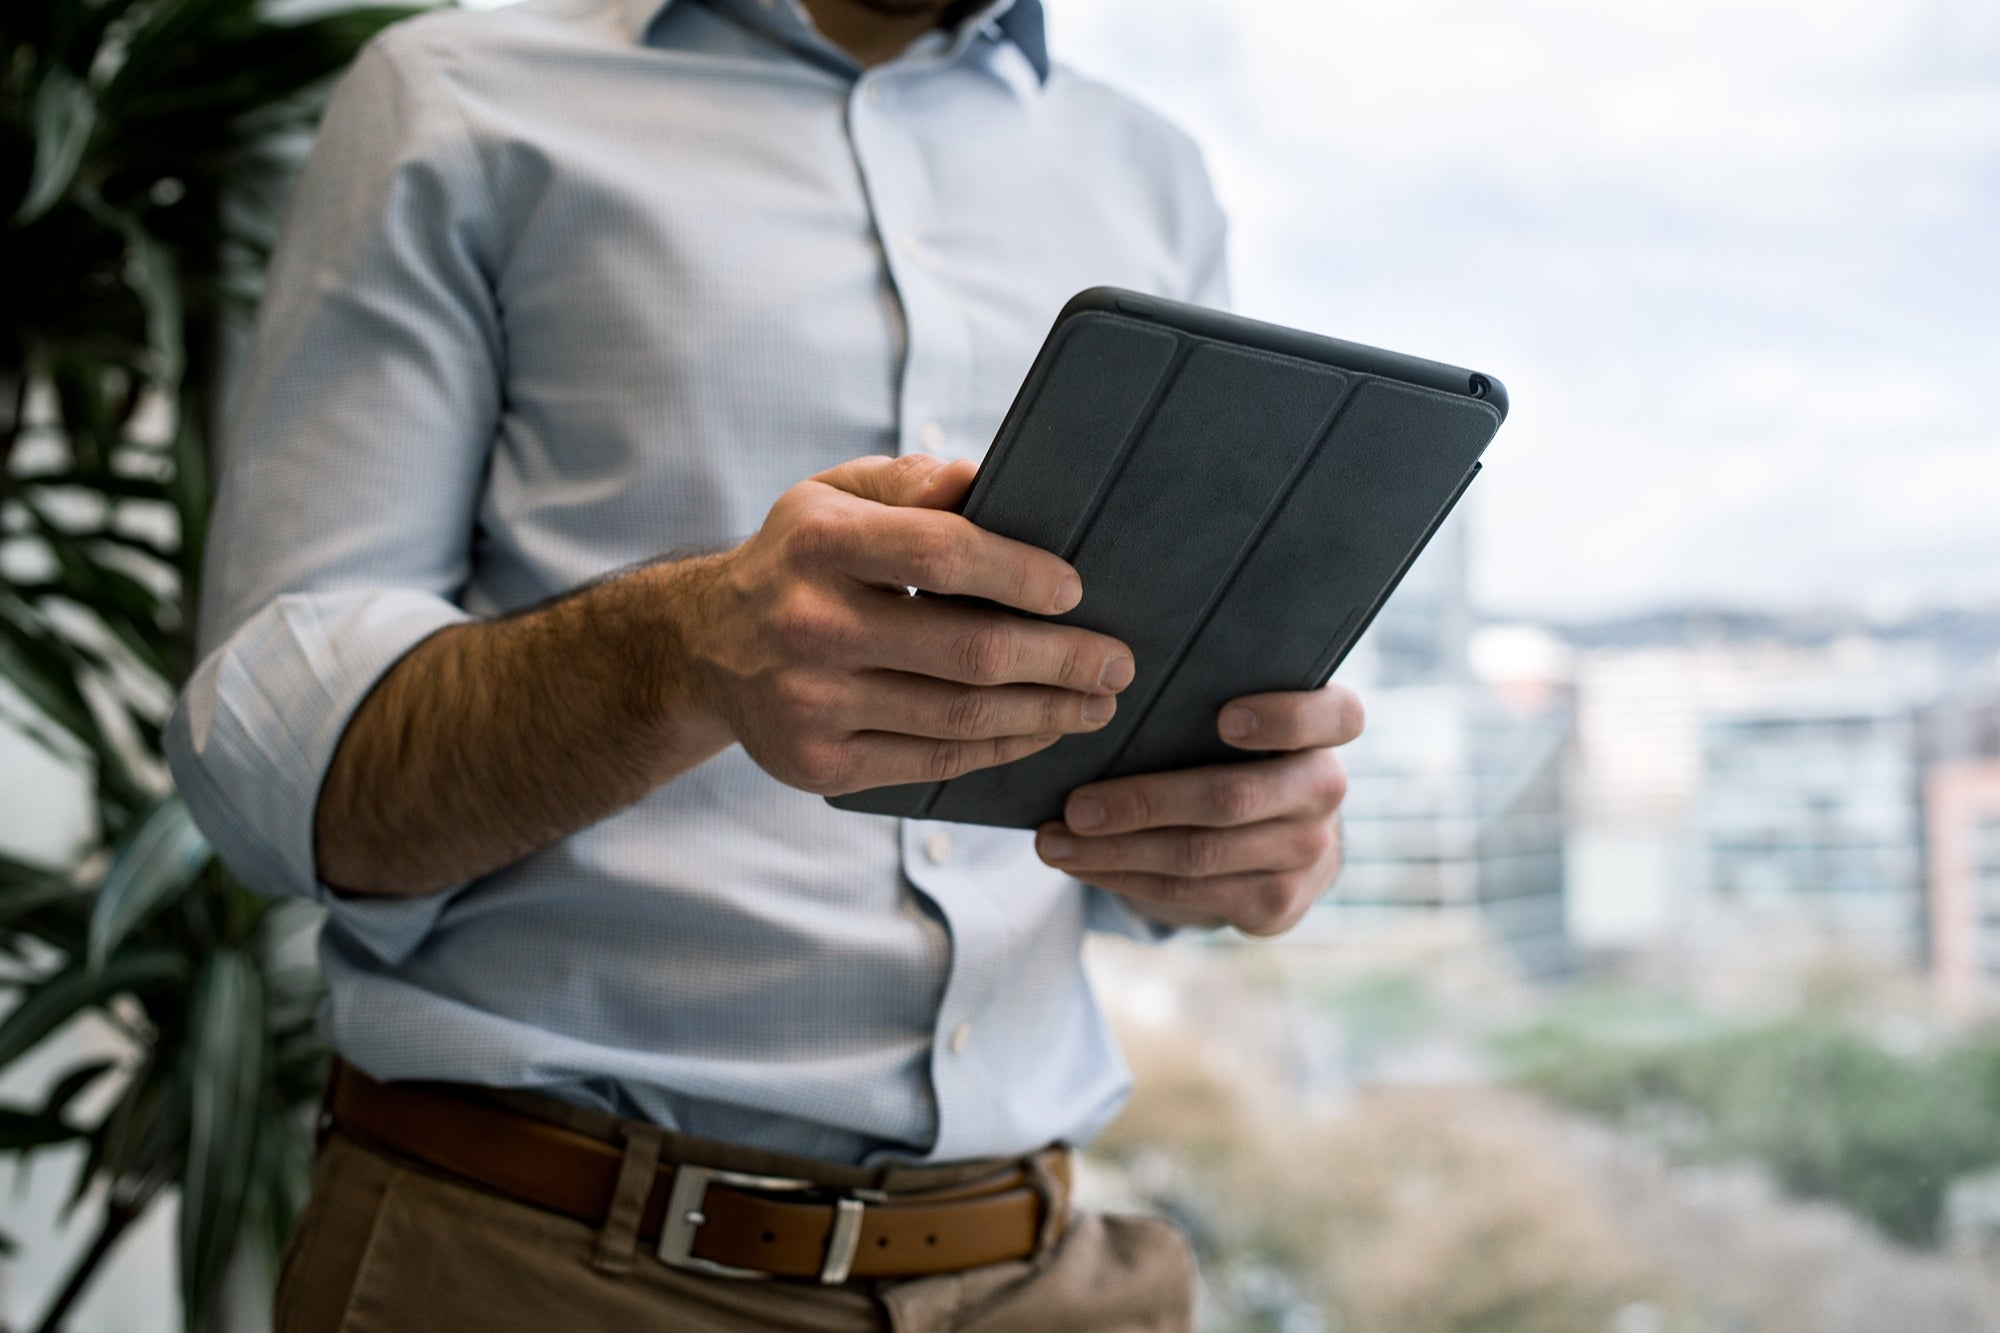 The Best Tablets for Business of 2021